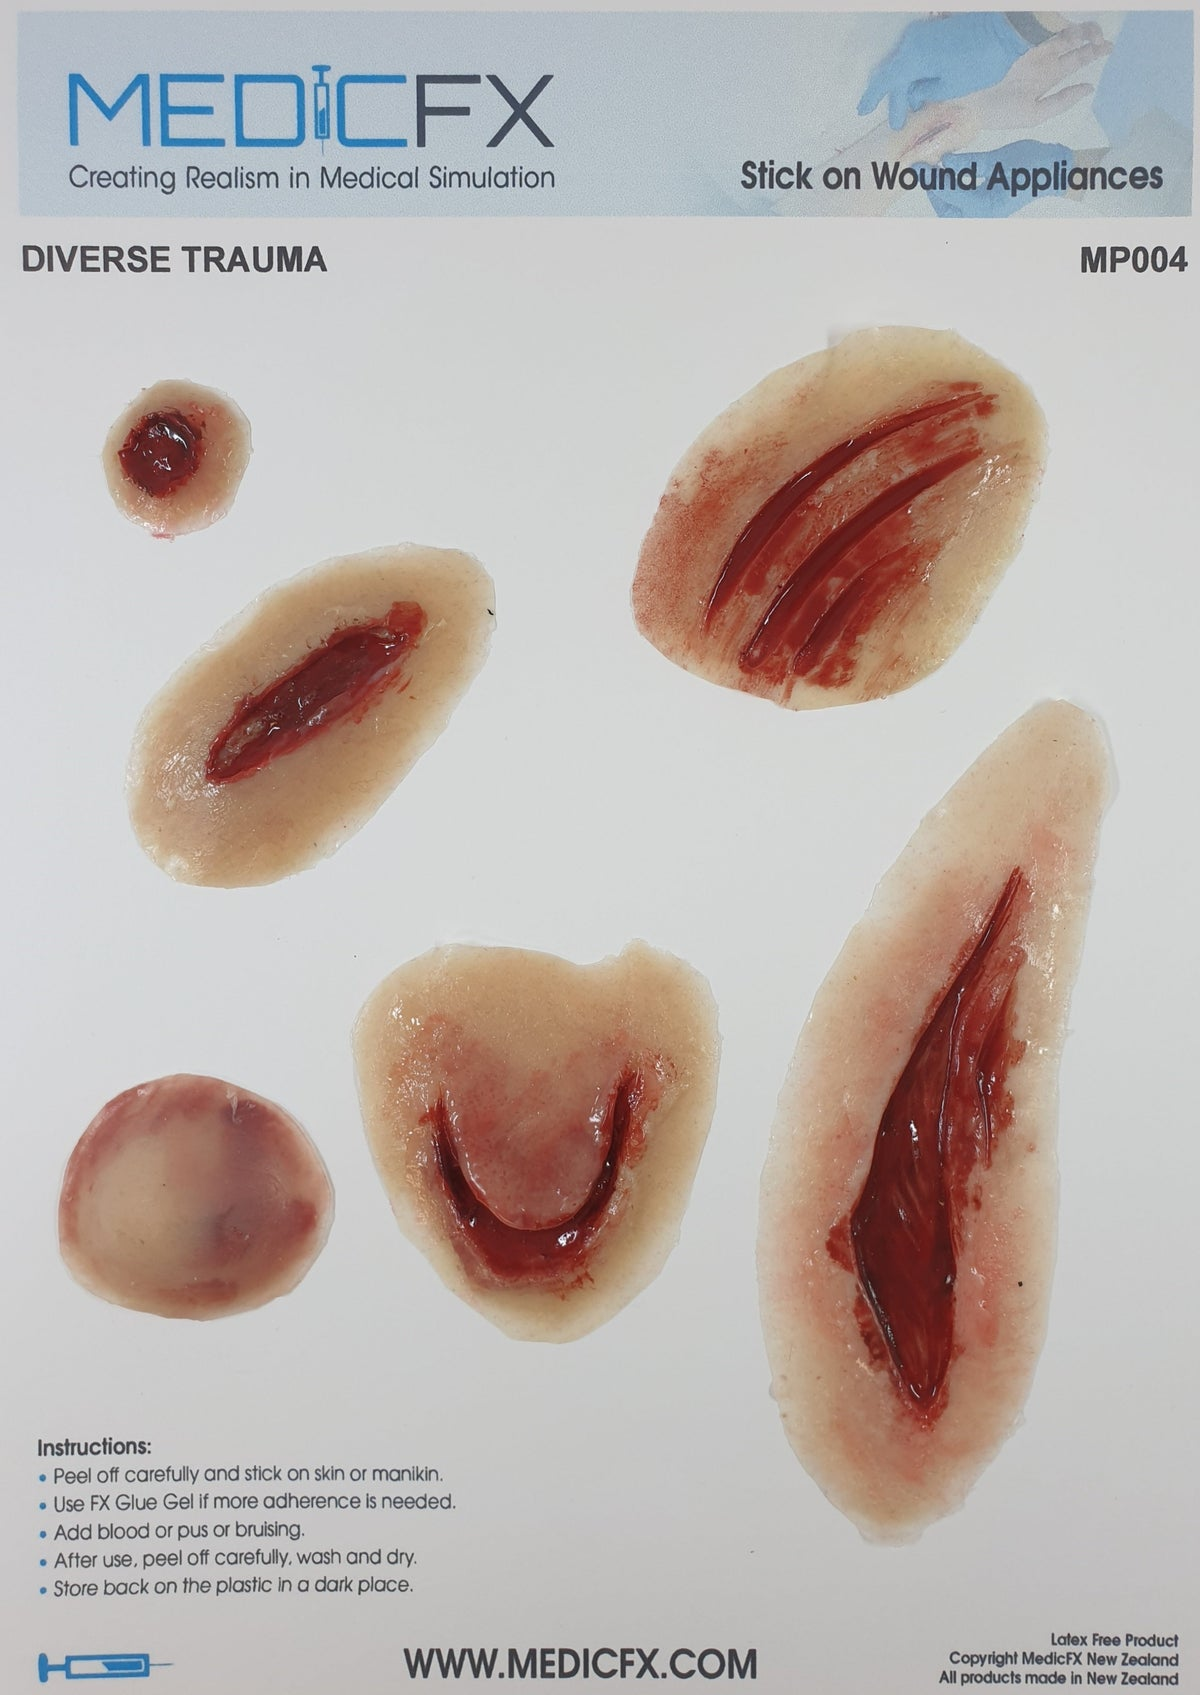 MP004 SHEET DIVERSE TRAUMA